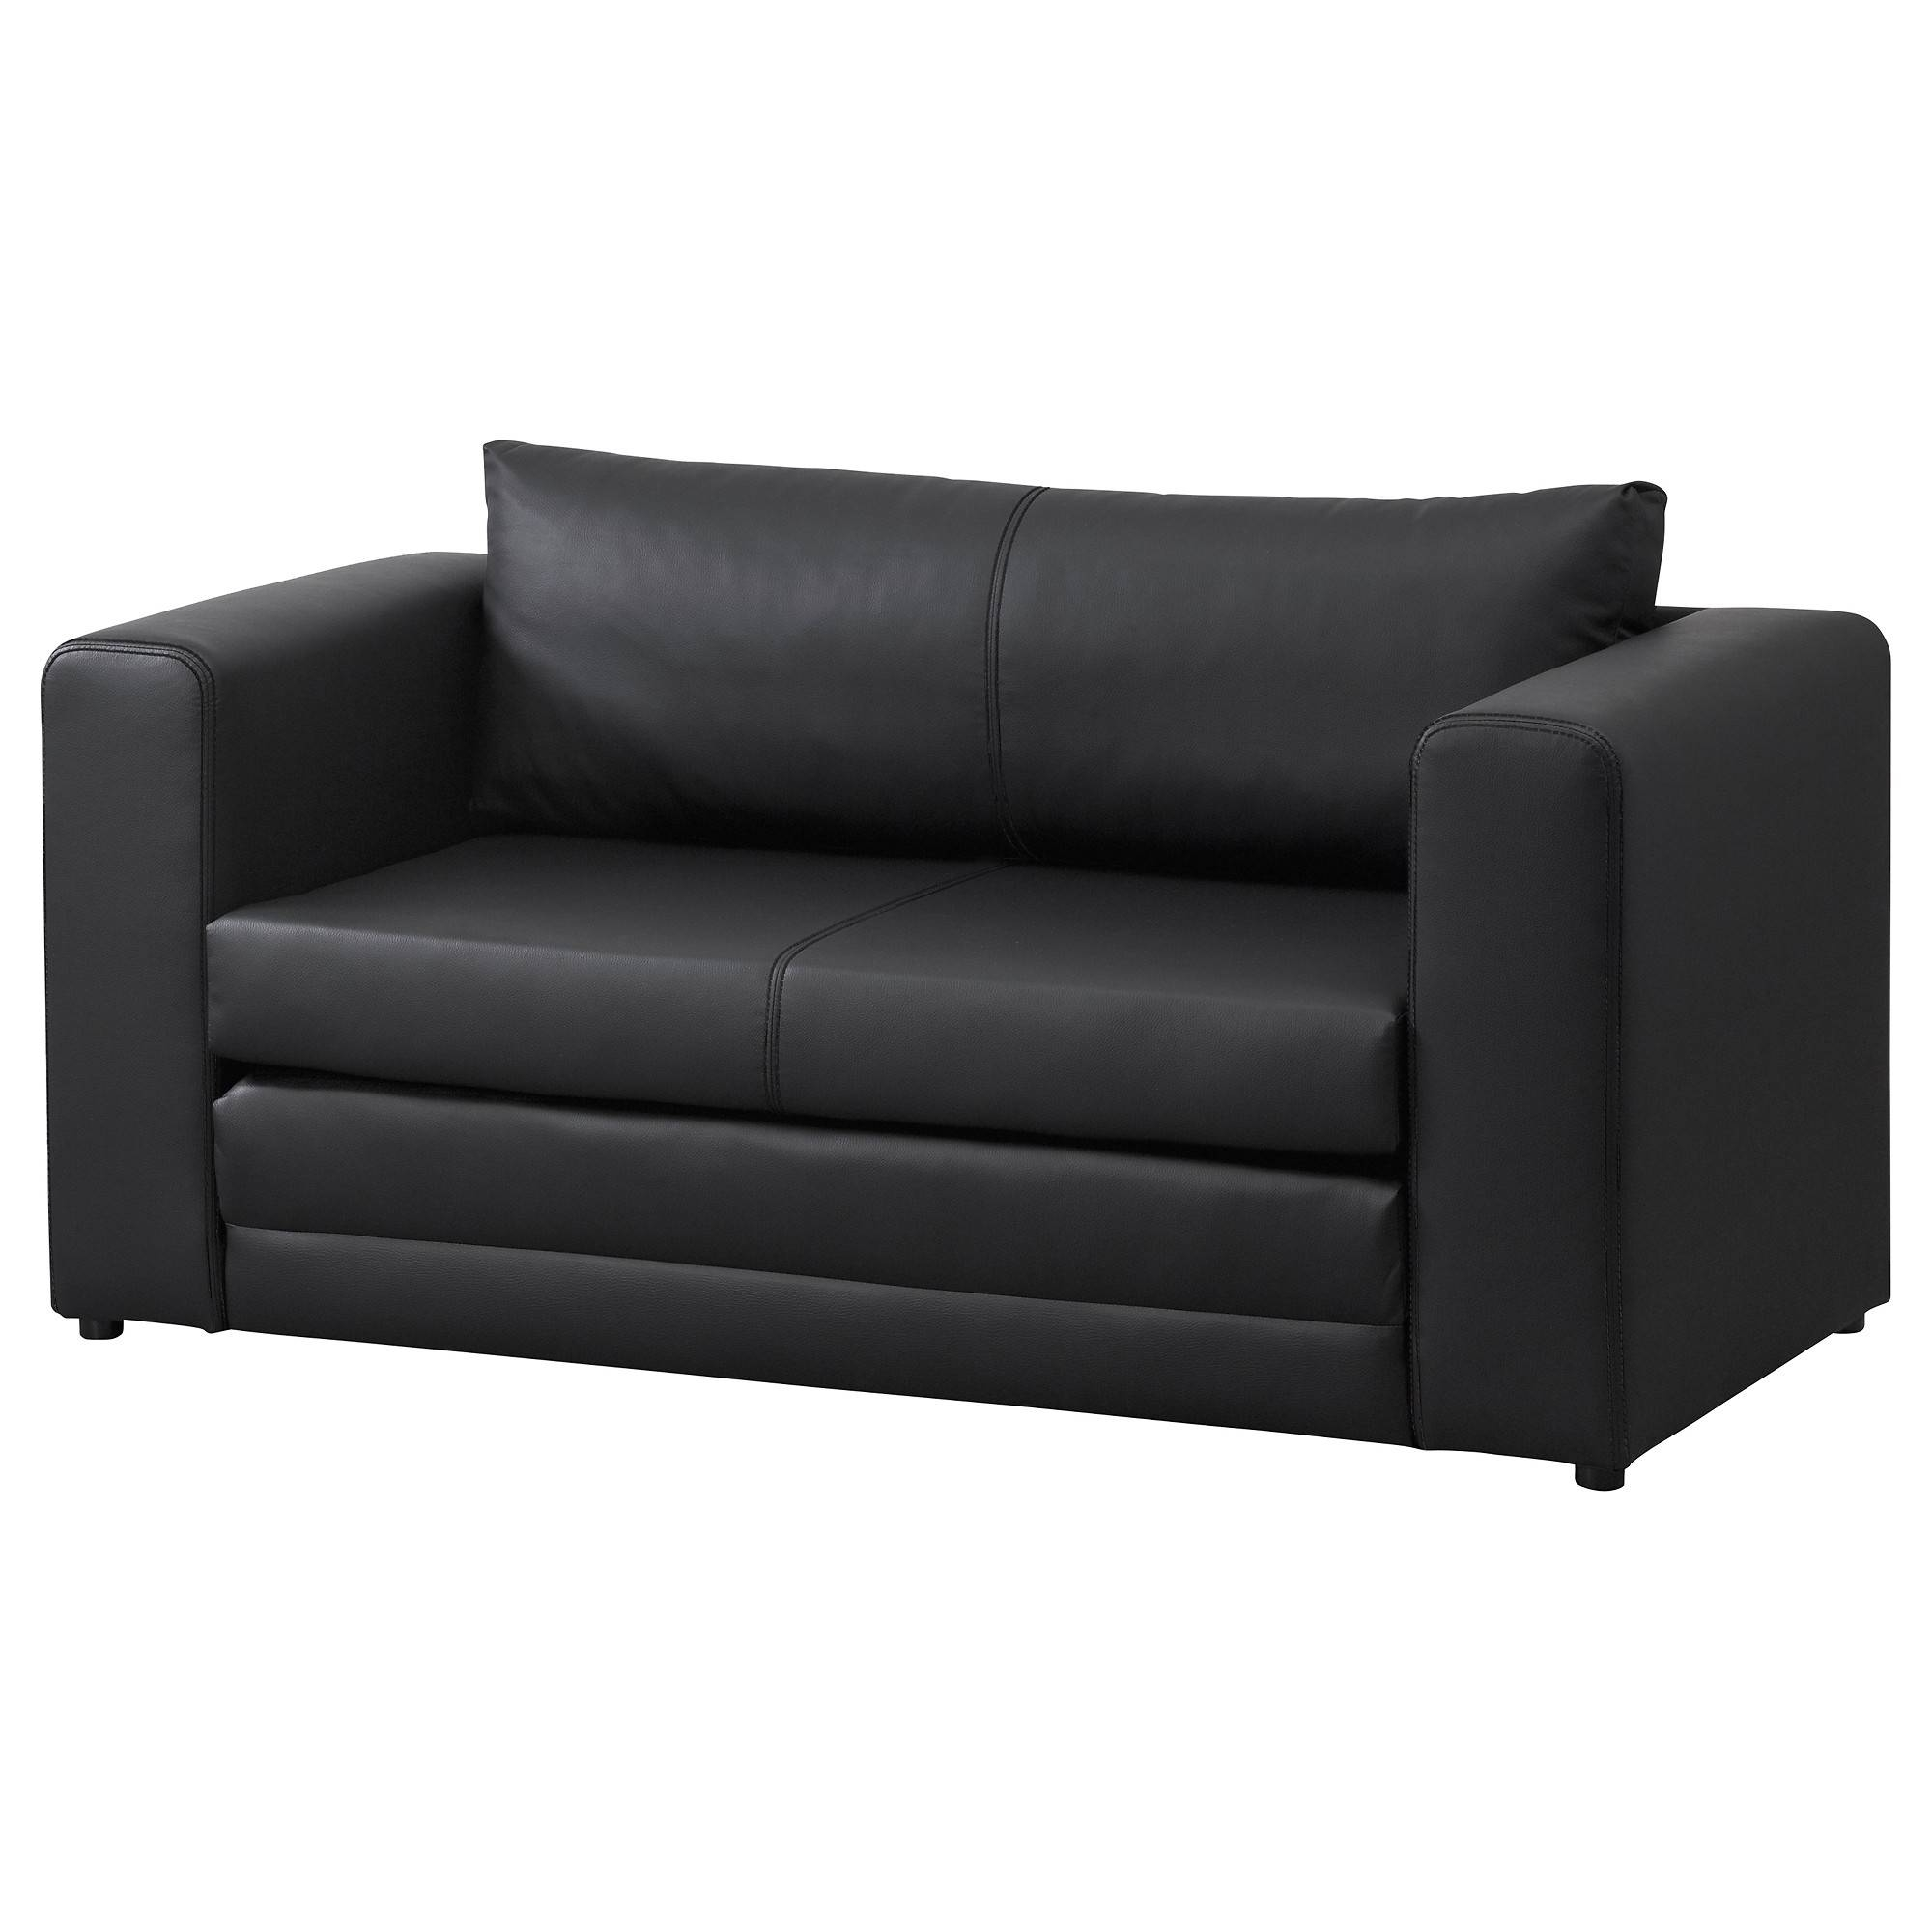 Askeby Two-Seat Sofa-Bed Black - Ikea inside Ikea Single Sofa Beds (Image 1 of 30)